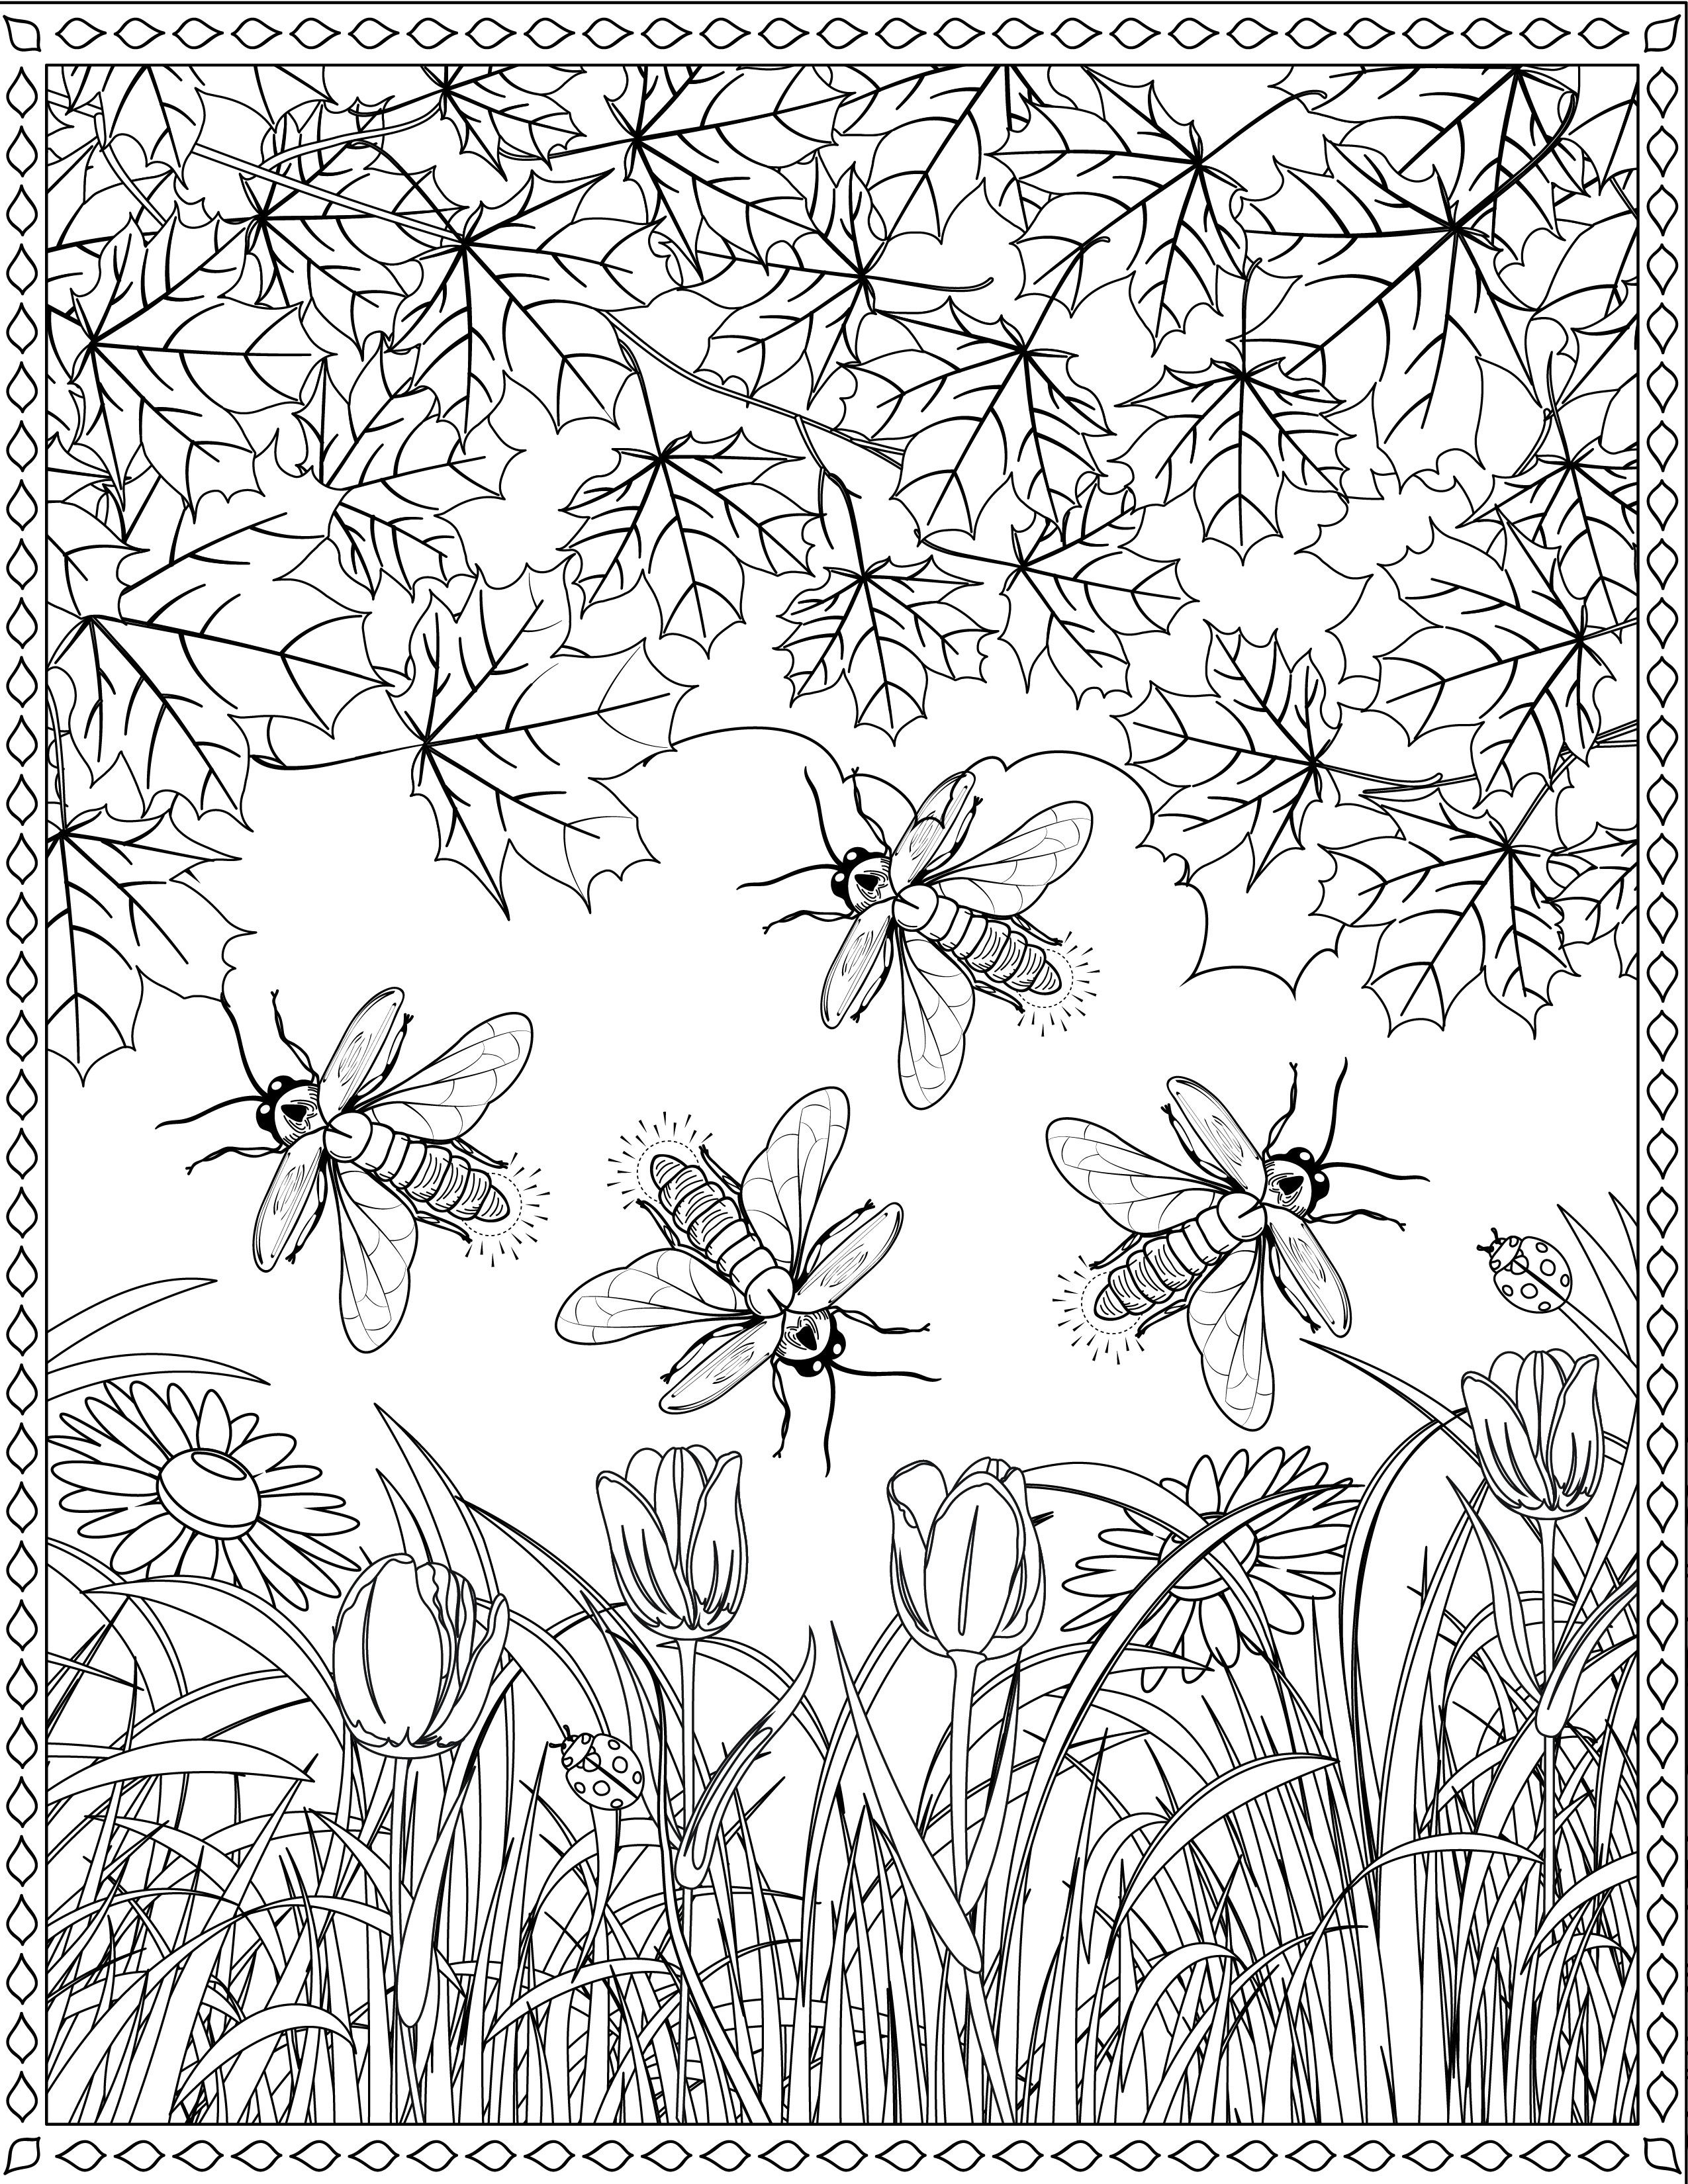 Firefly Coloring Page Coloring Pages Color New Crafts